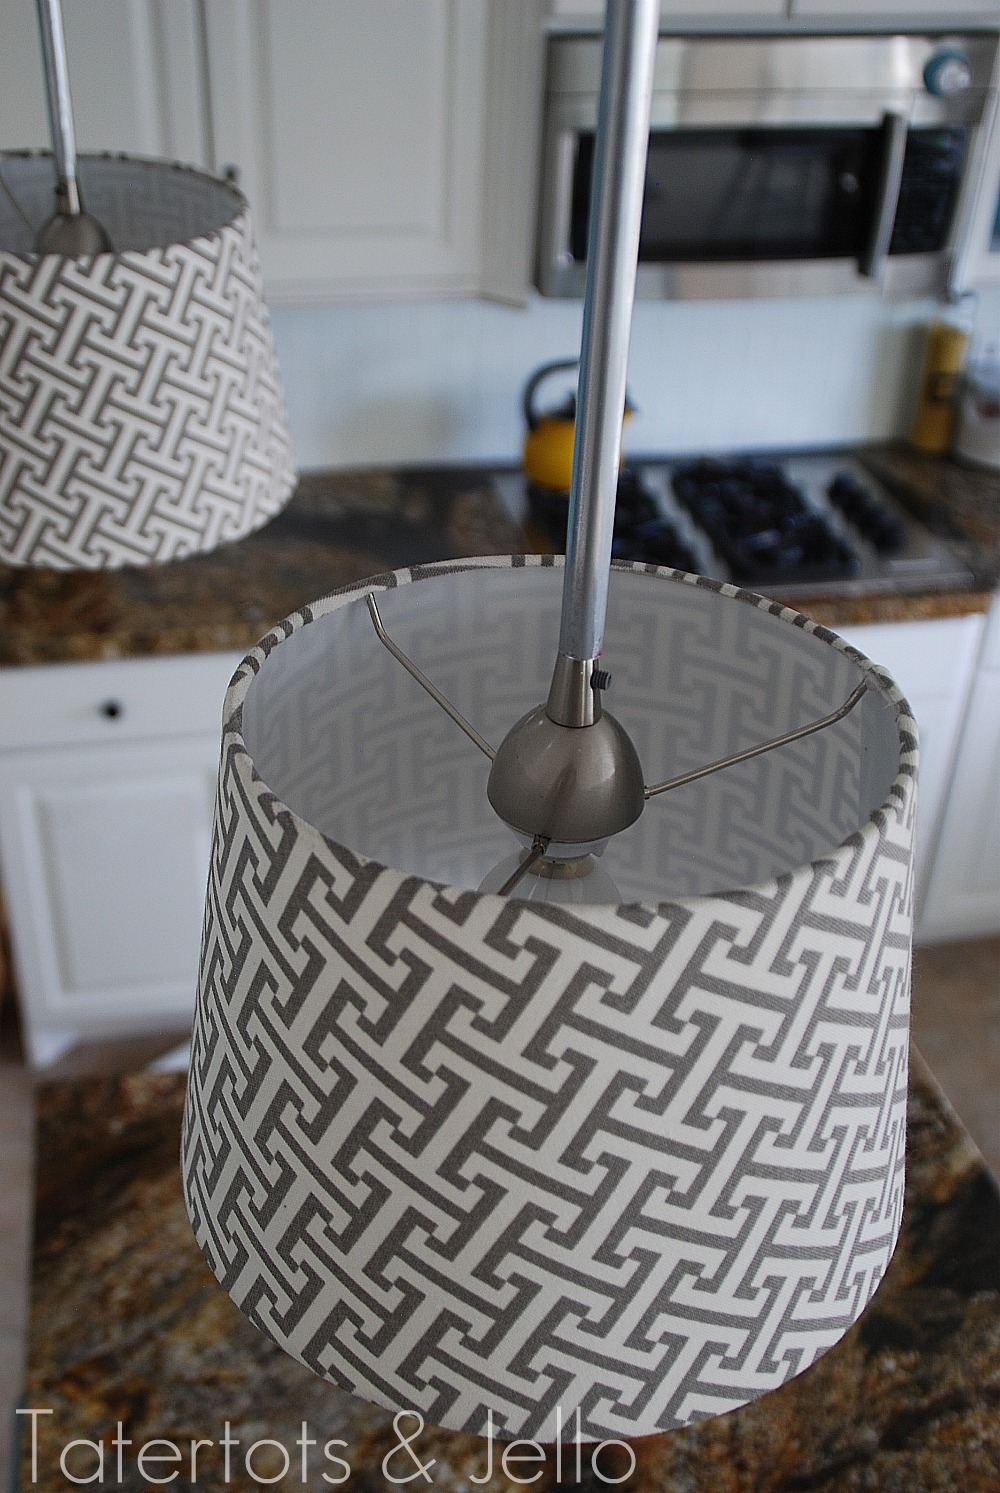 Make diy pendant lights kitchen remodel project for Diy pendant light